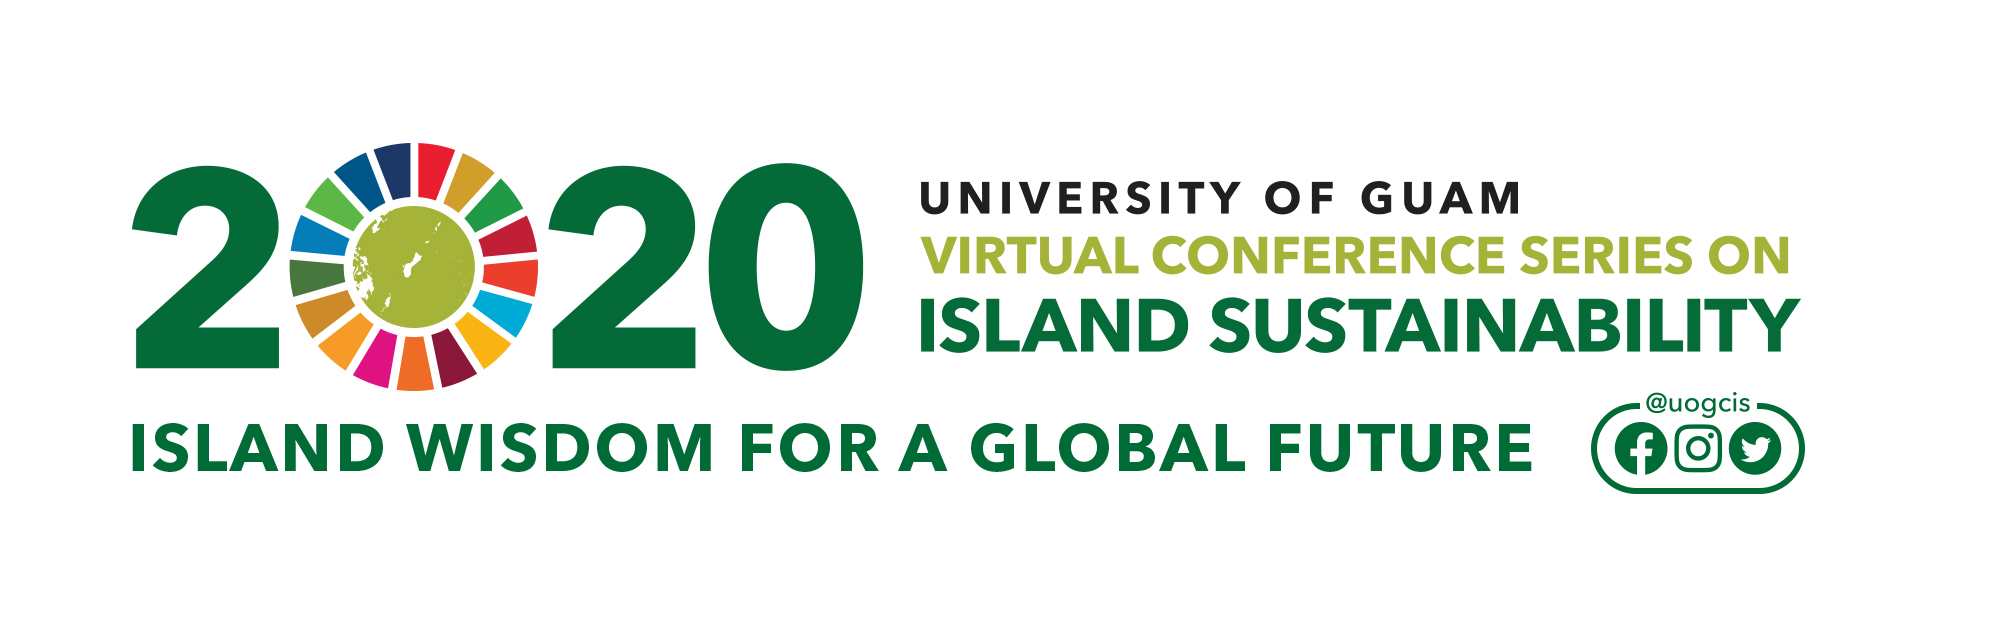 CIS 2020 Conference Banner